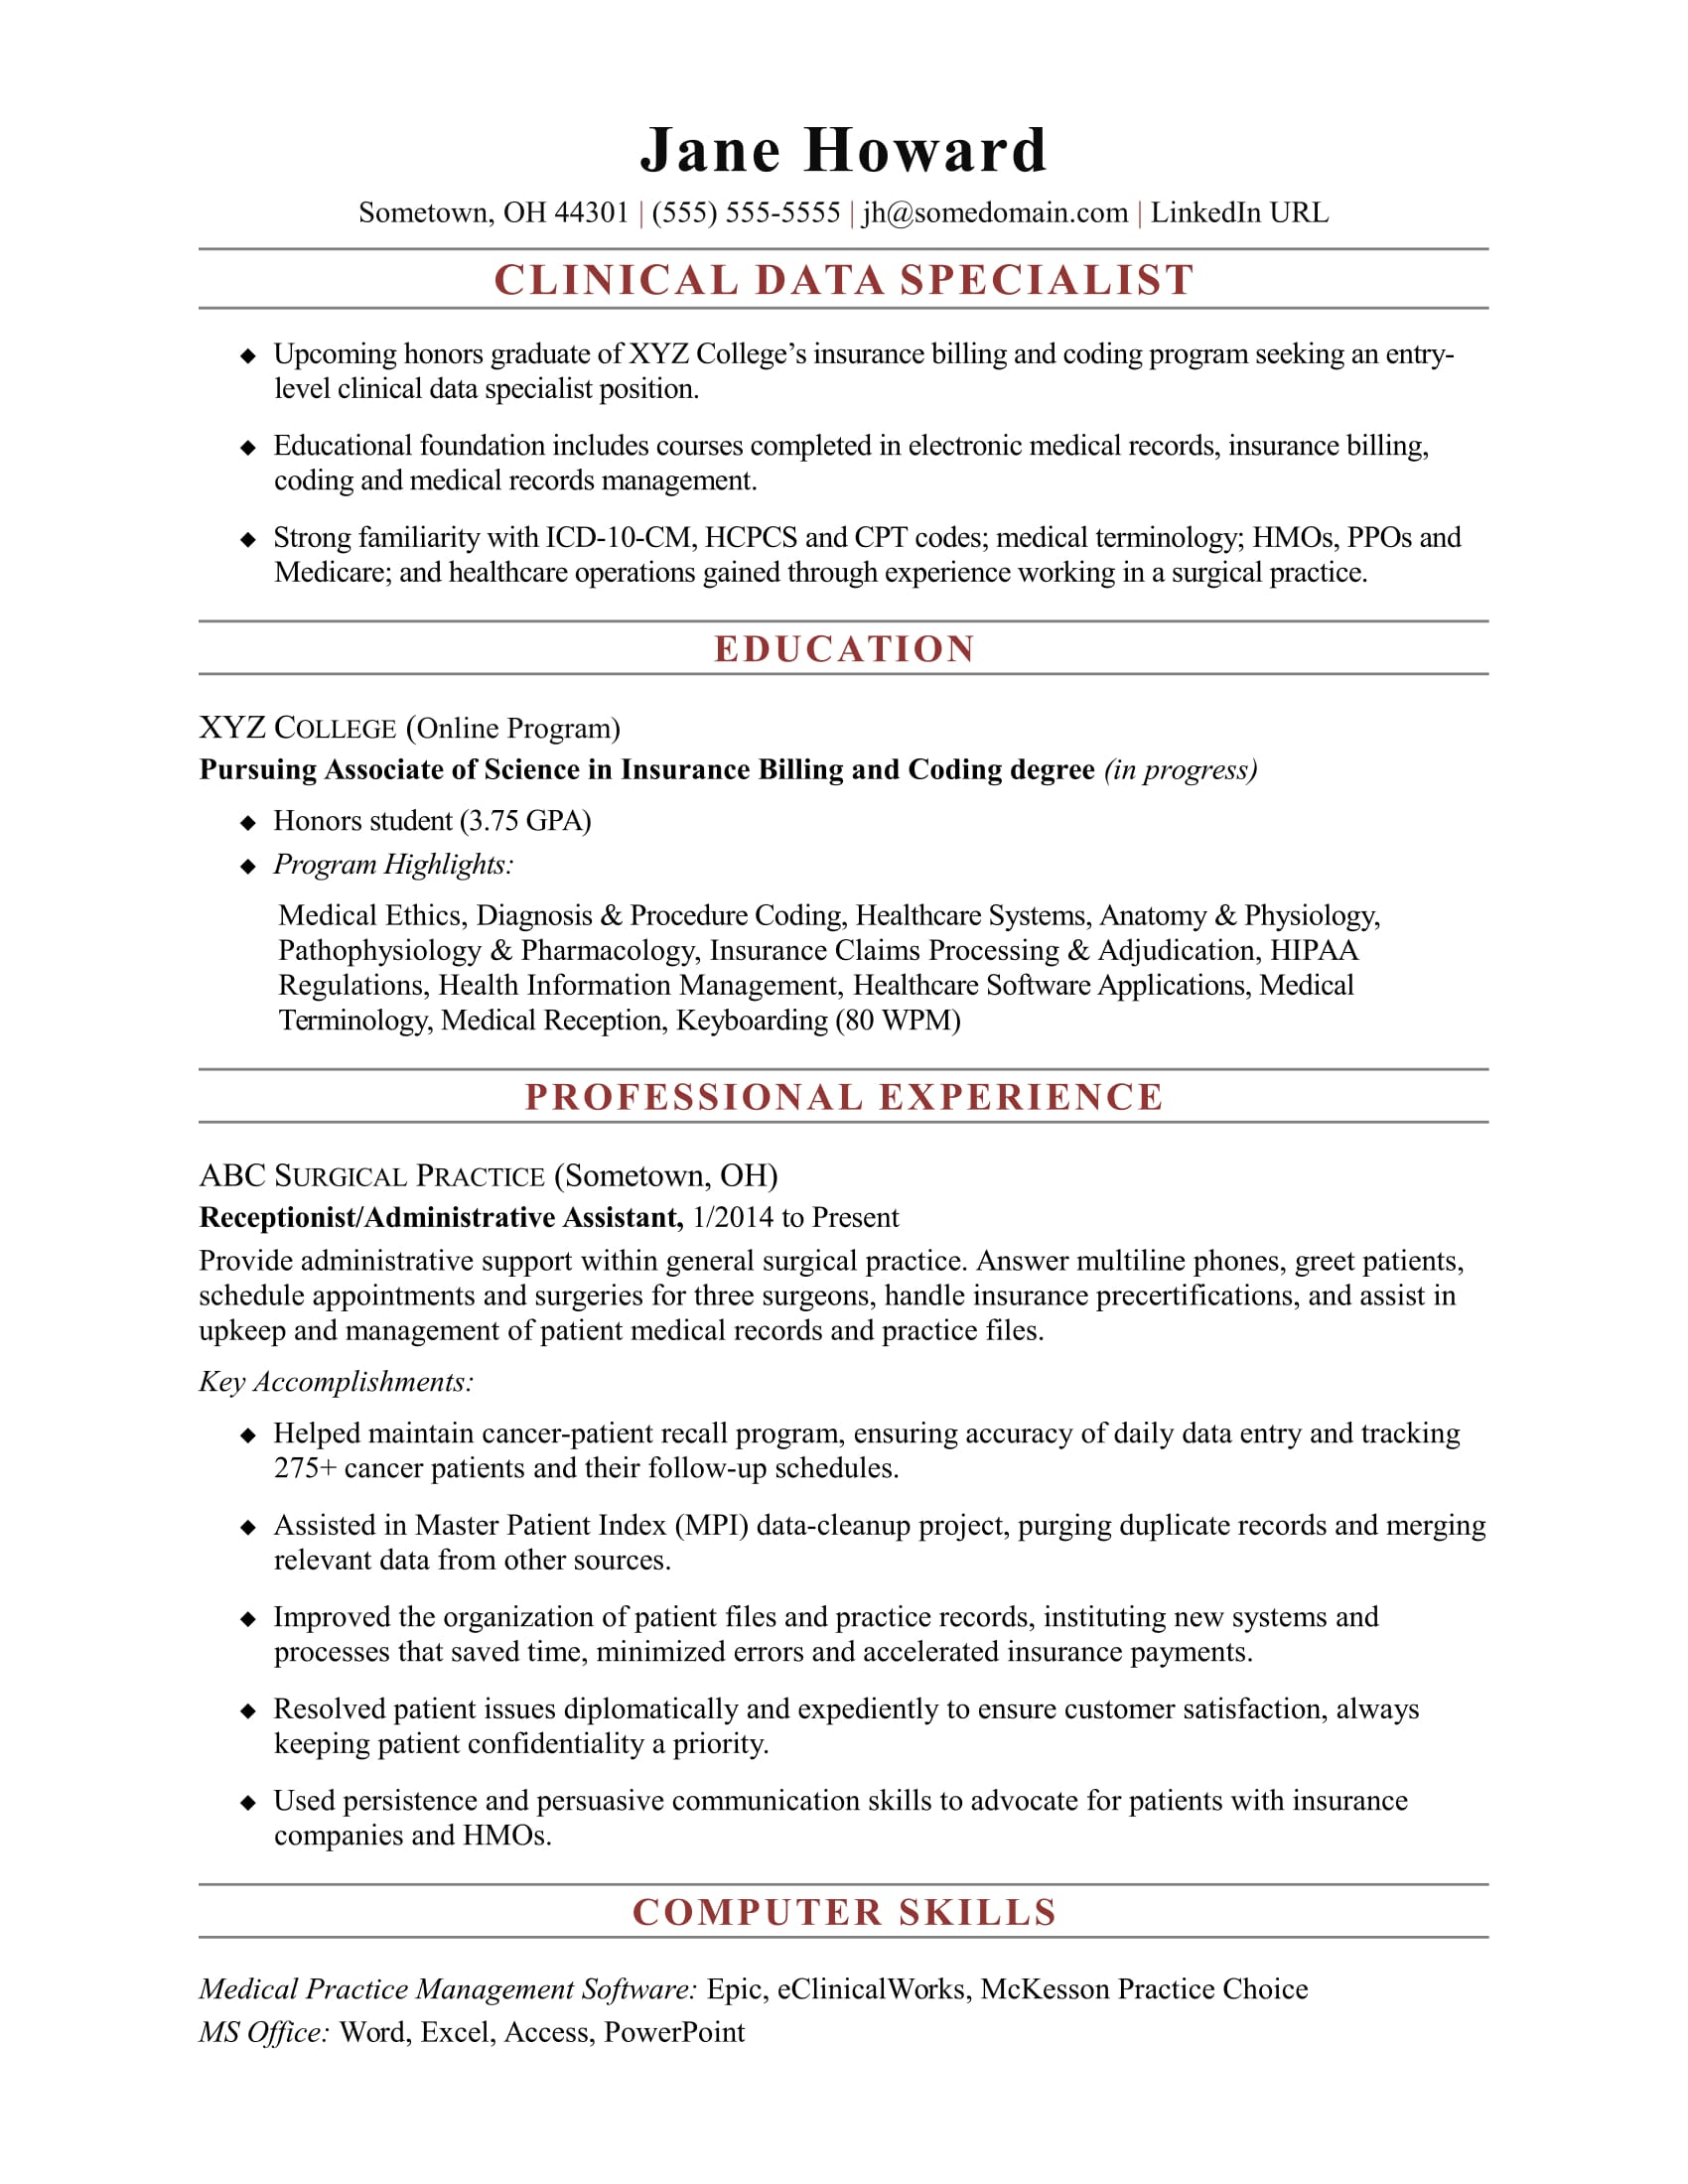 Awesome Sample Resume For An Entry Level Clinical Data Specialist